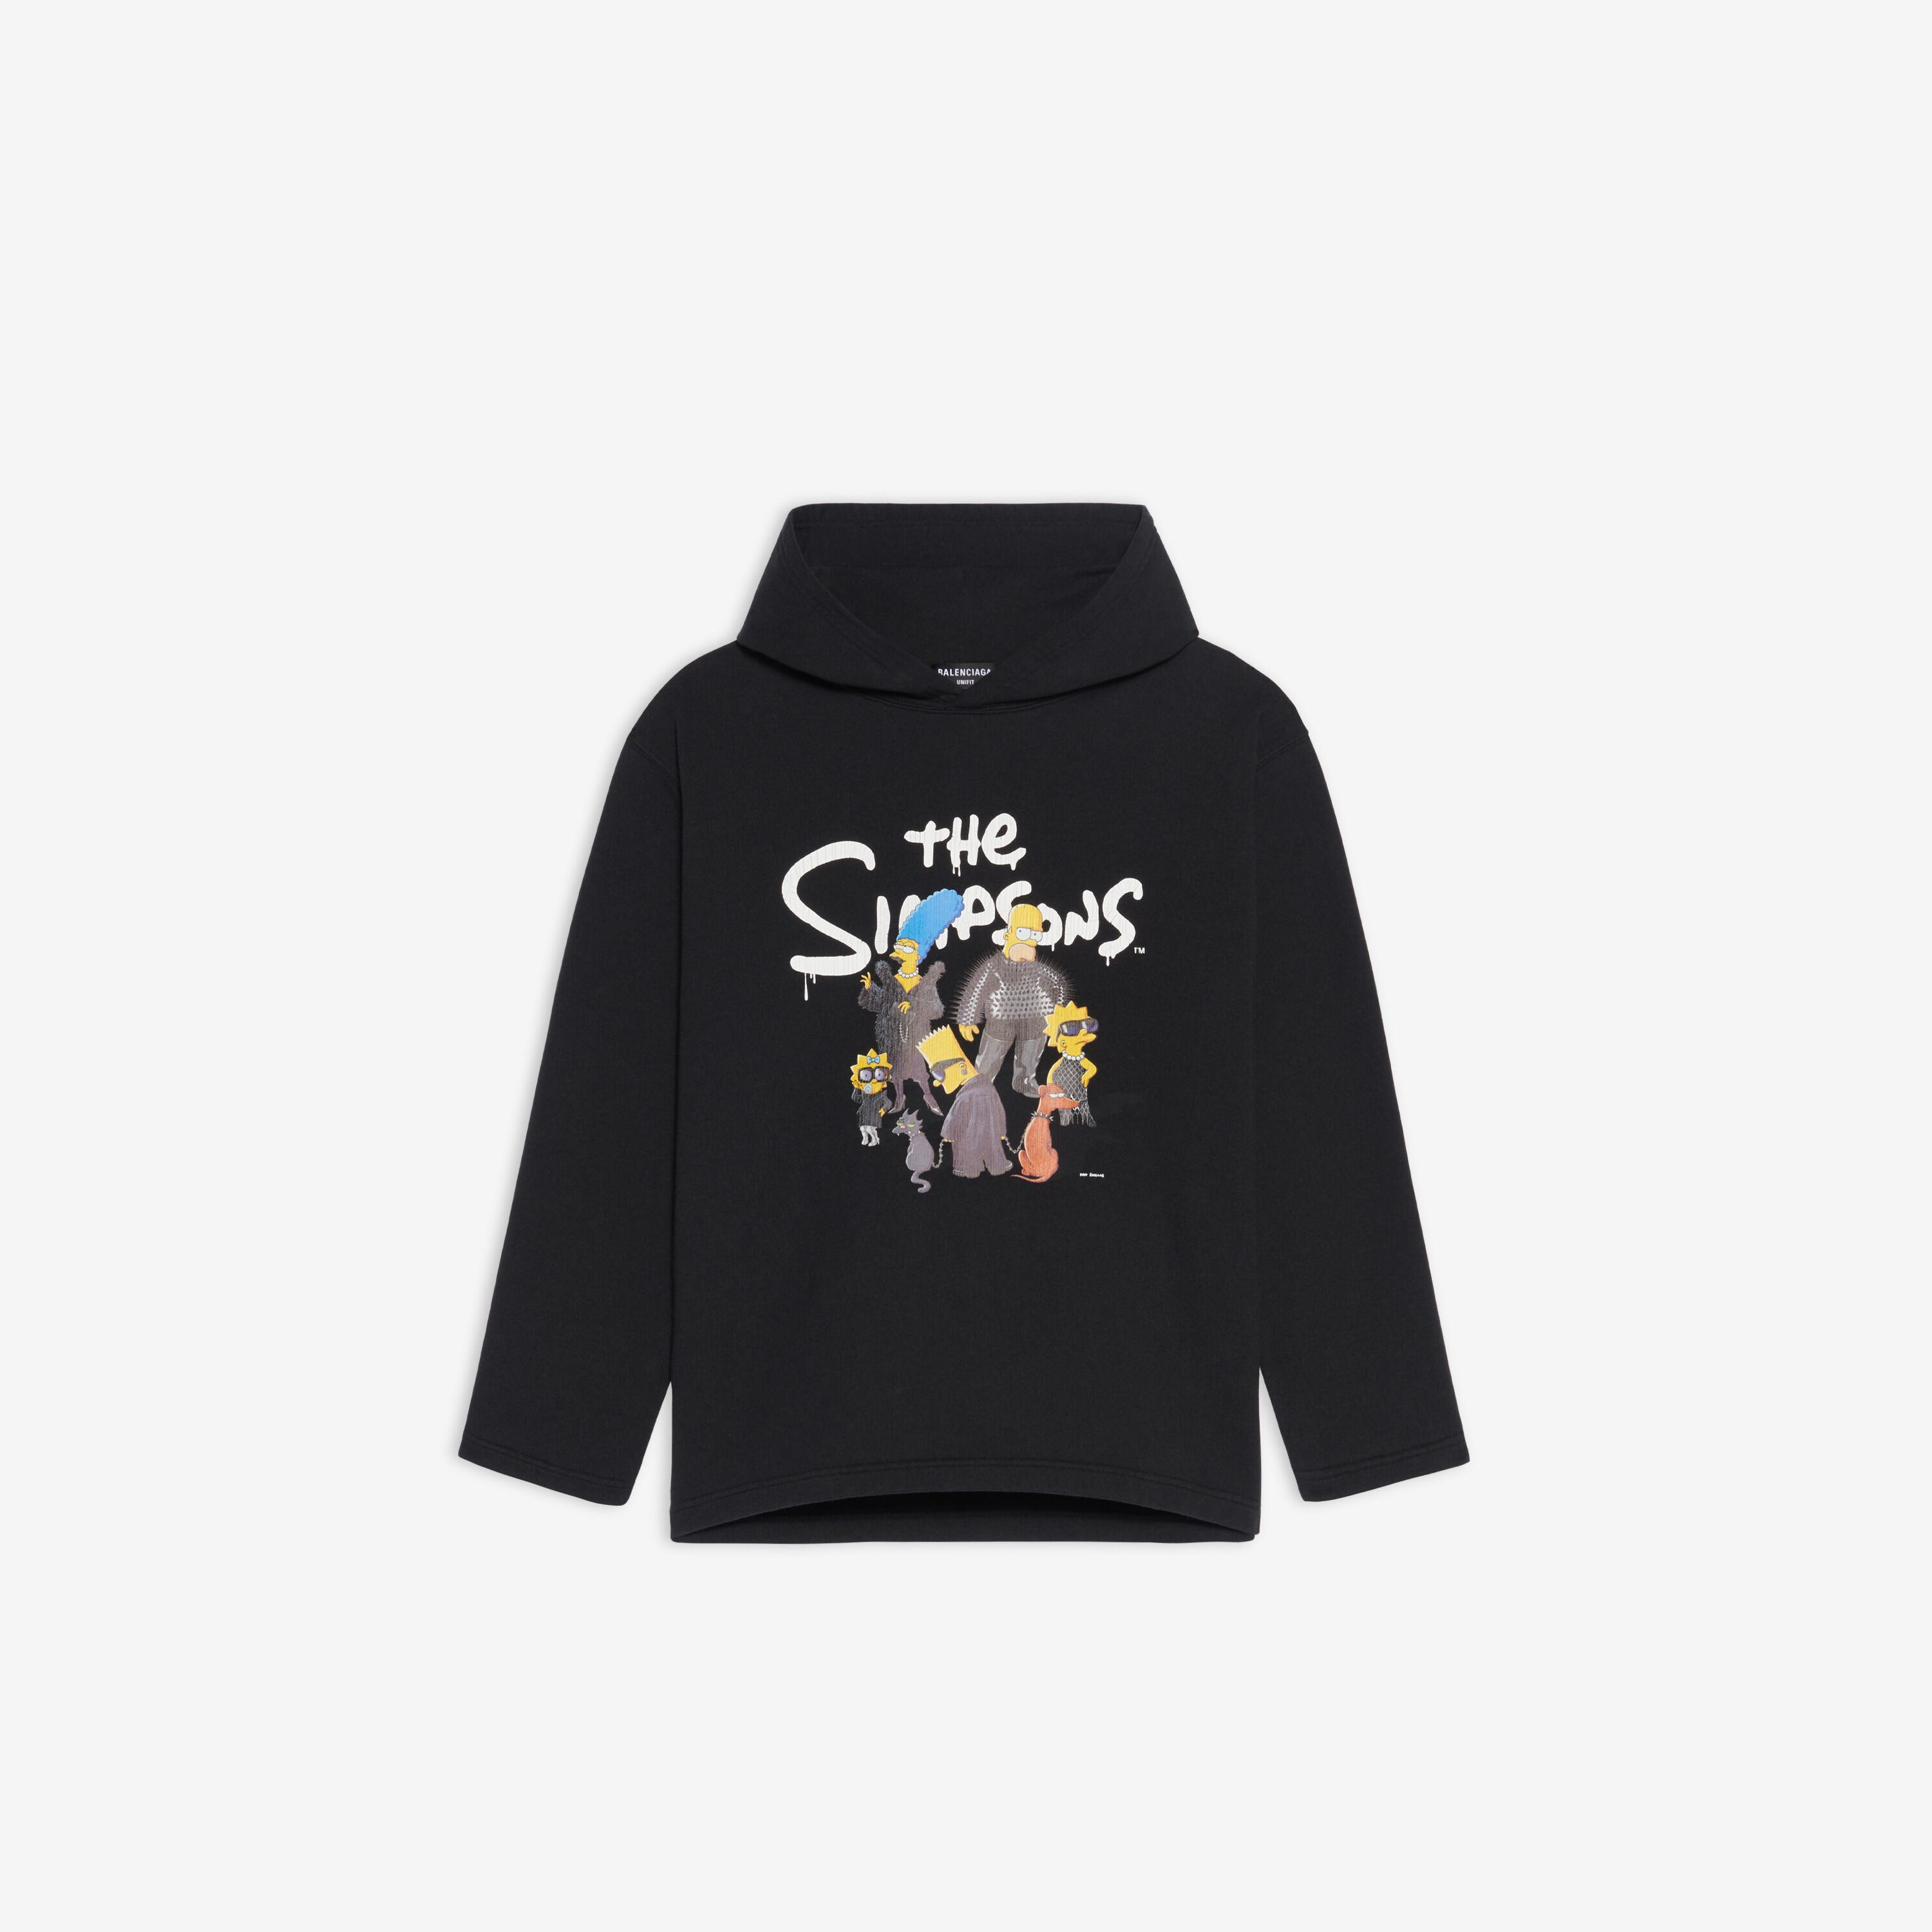 The Simpsons TM & © 20th Television Cropped Hoodie